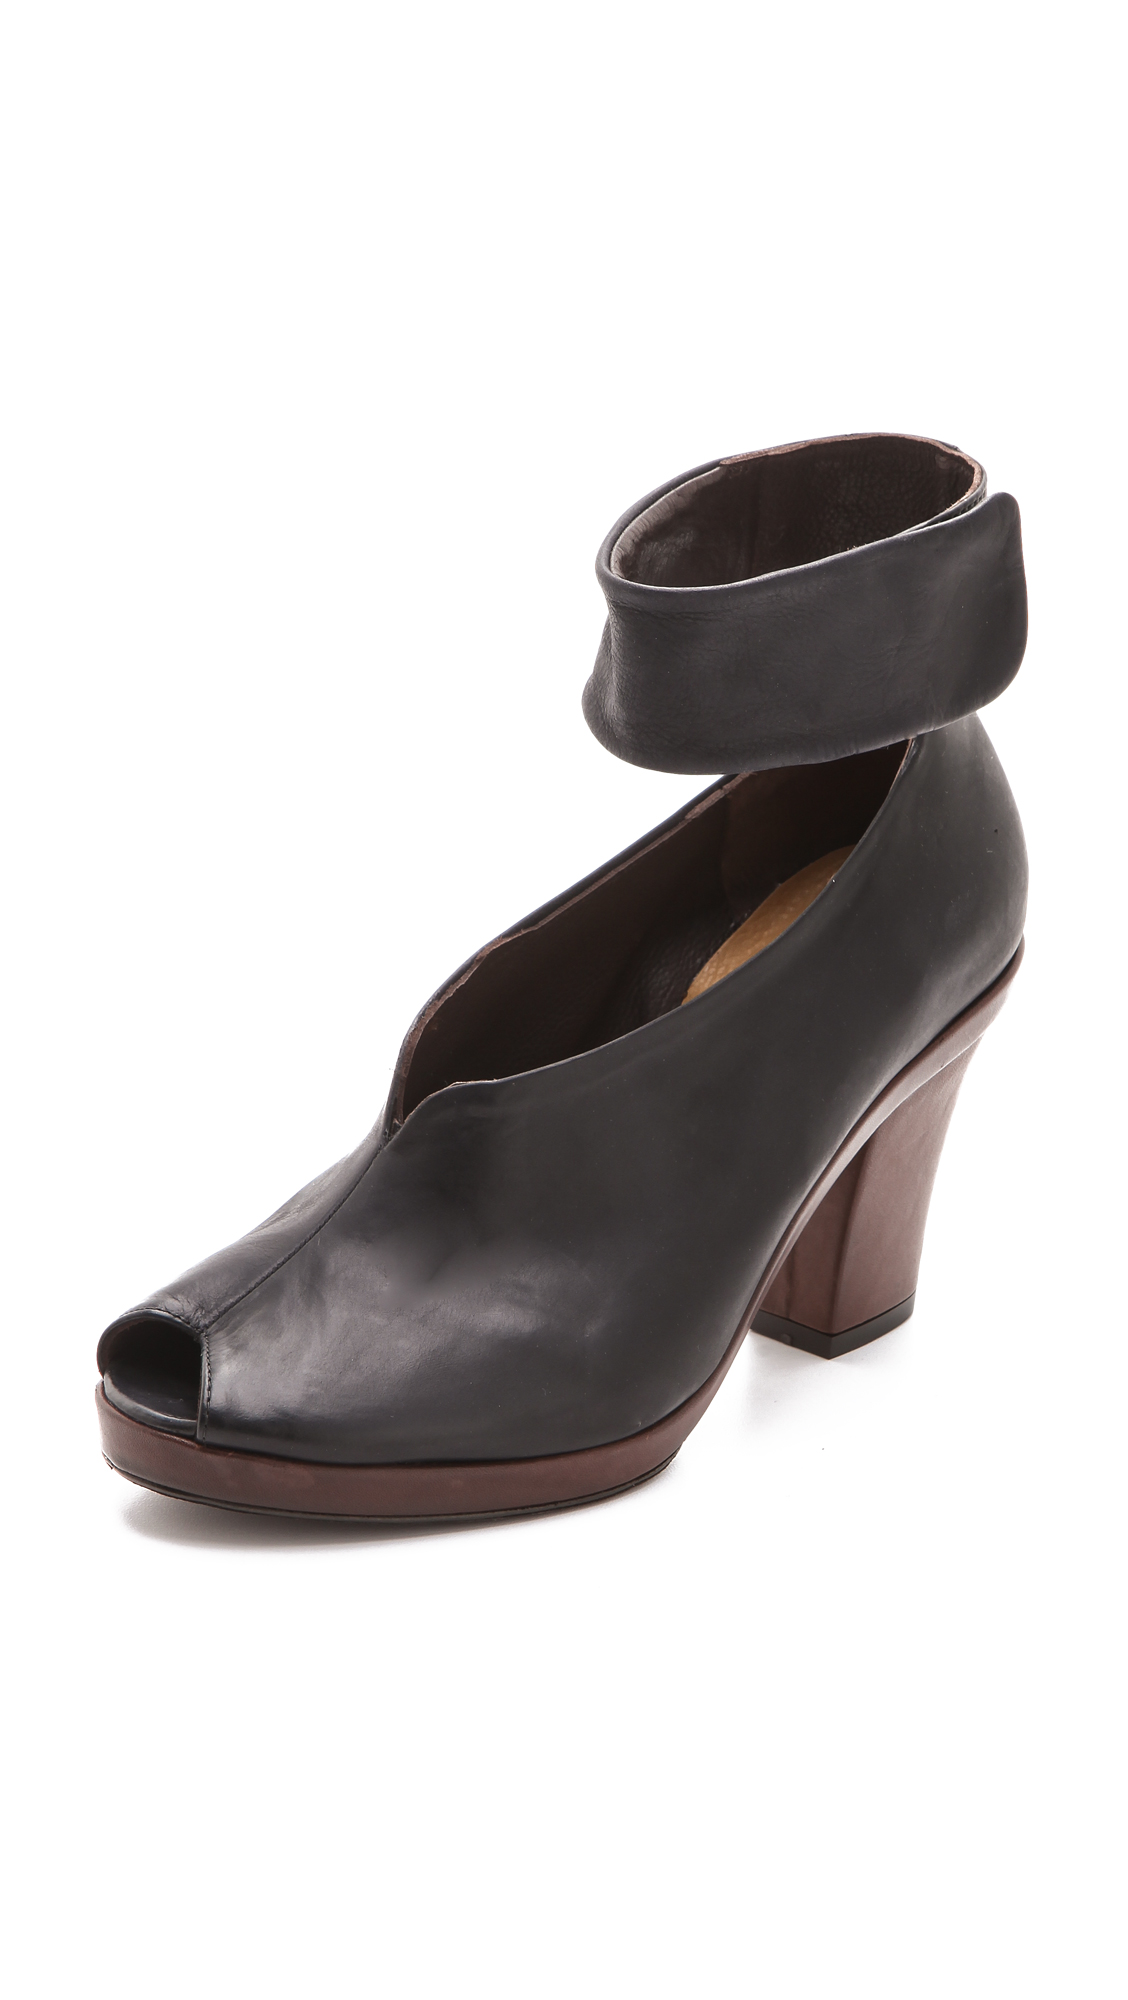 dab88919db14dc Coclico Shoes Edith Mid Heel Booties